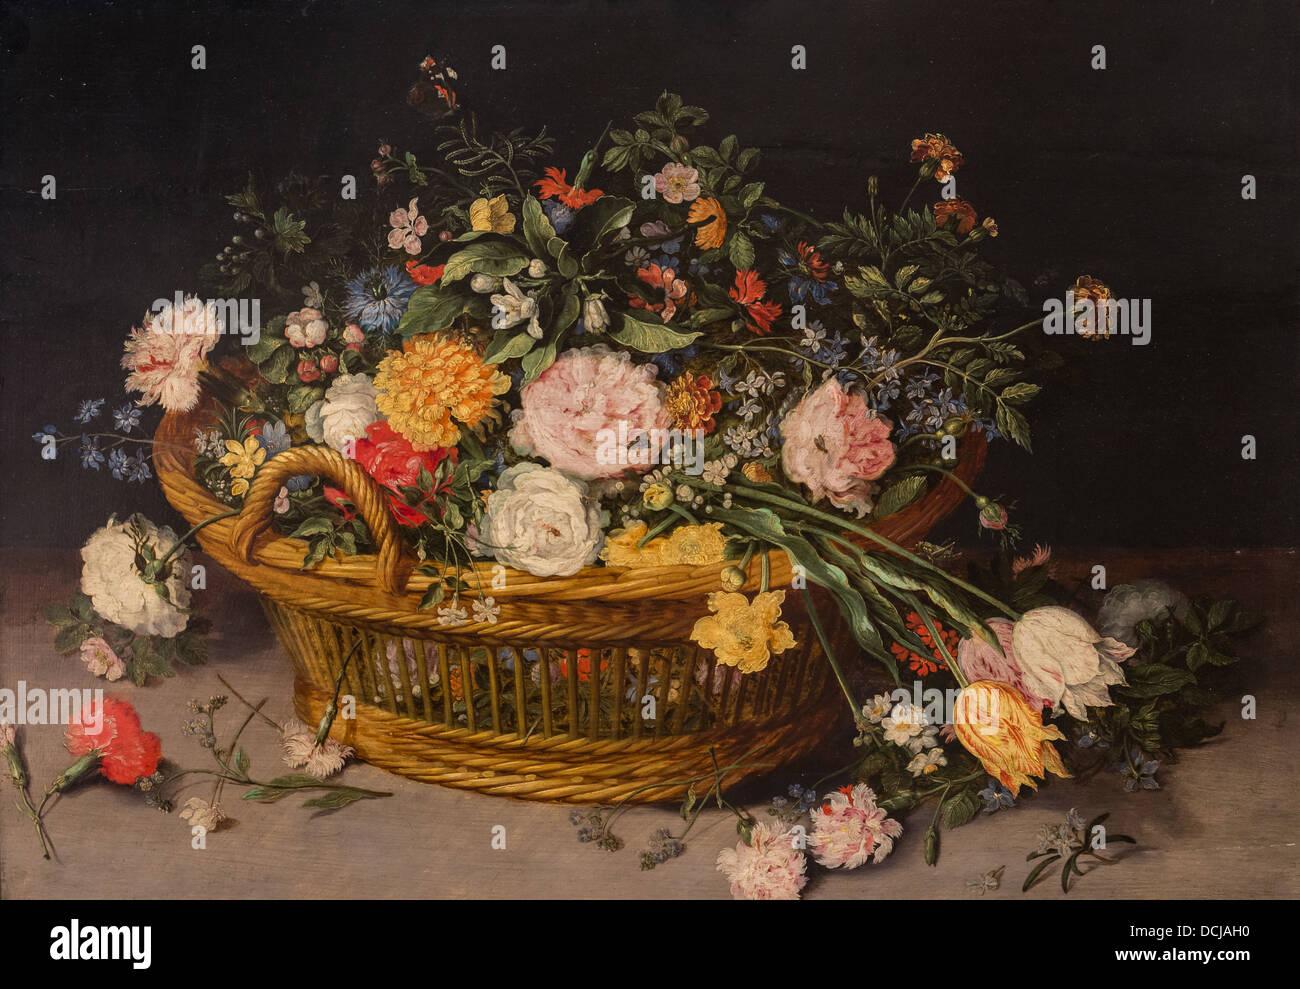 17th century  -  A Basket of Flowers - Jan Brueghel the Younger (1620) - Metropolitan Museum of Art - New York Oil - Stock Image